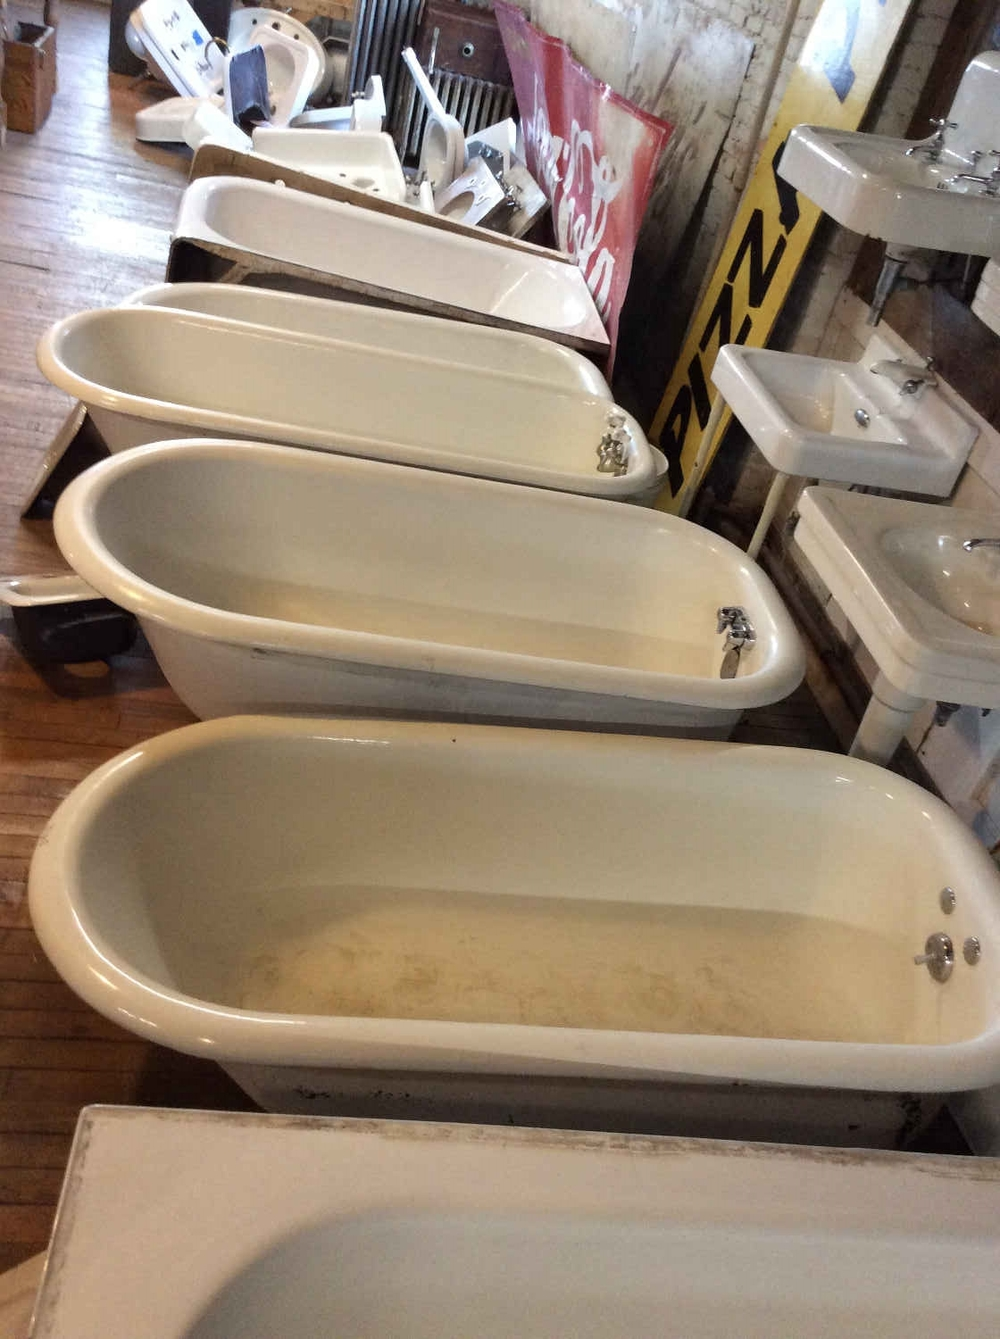 Porcelain Over Cast Iron Claw foot Tubs